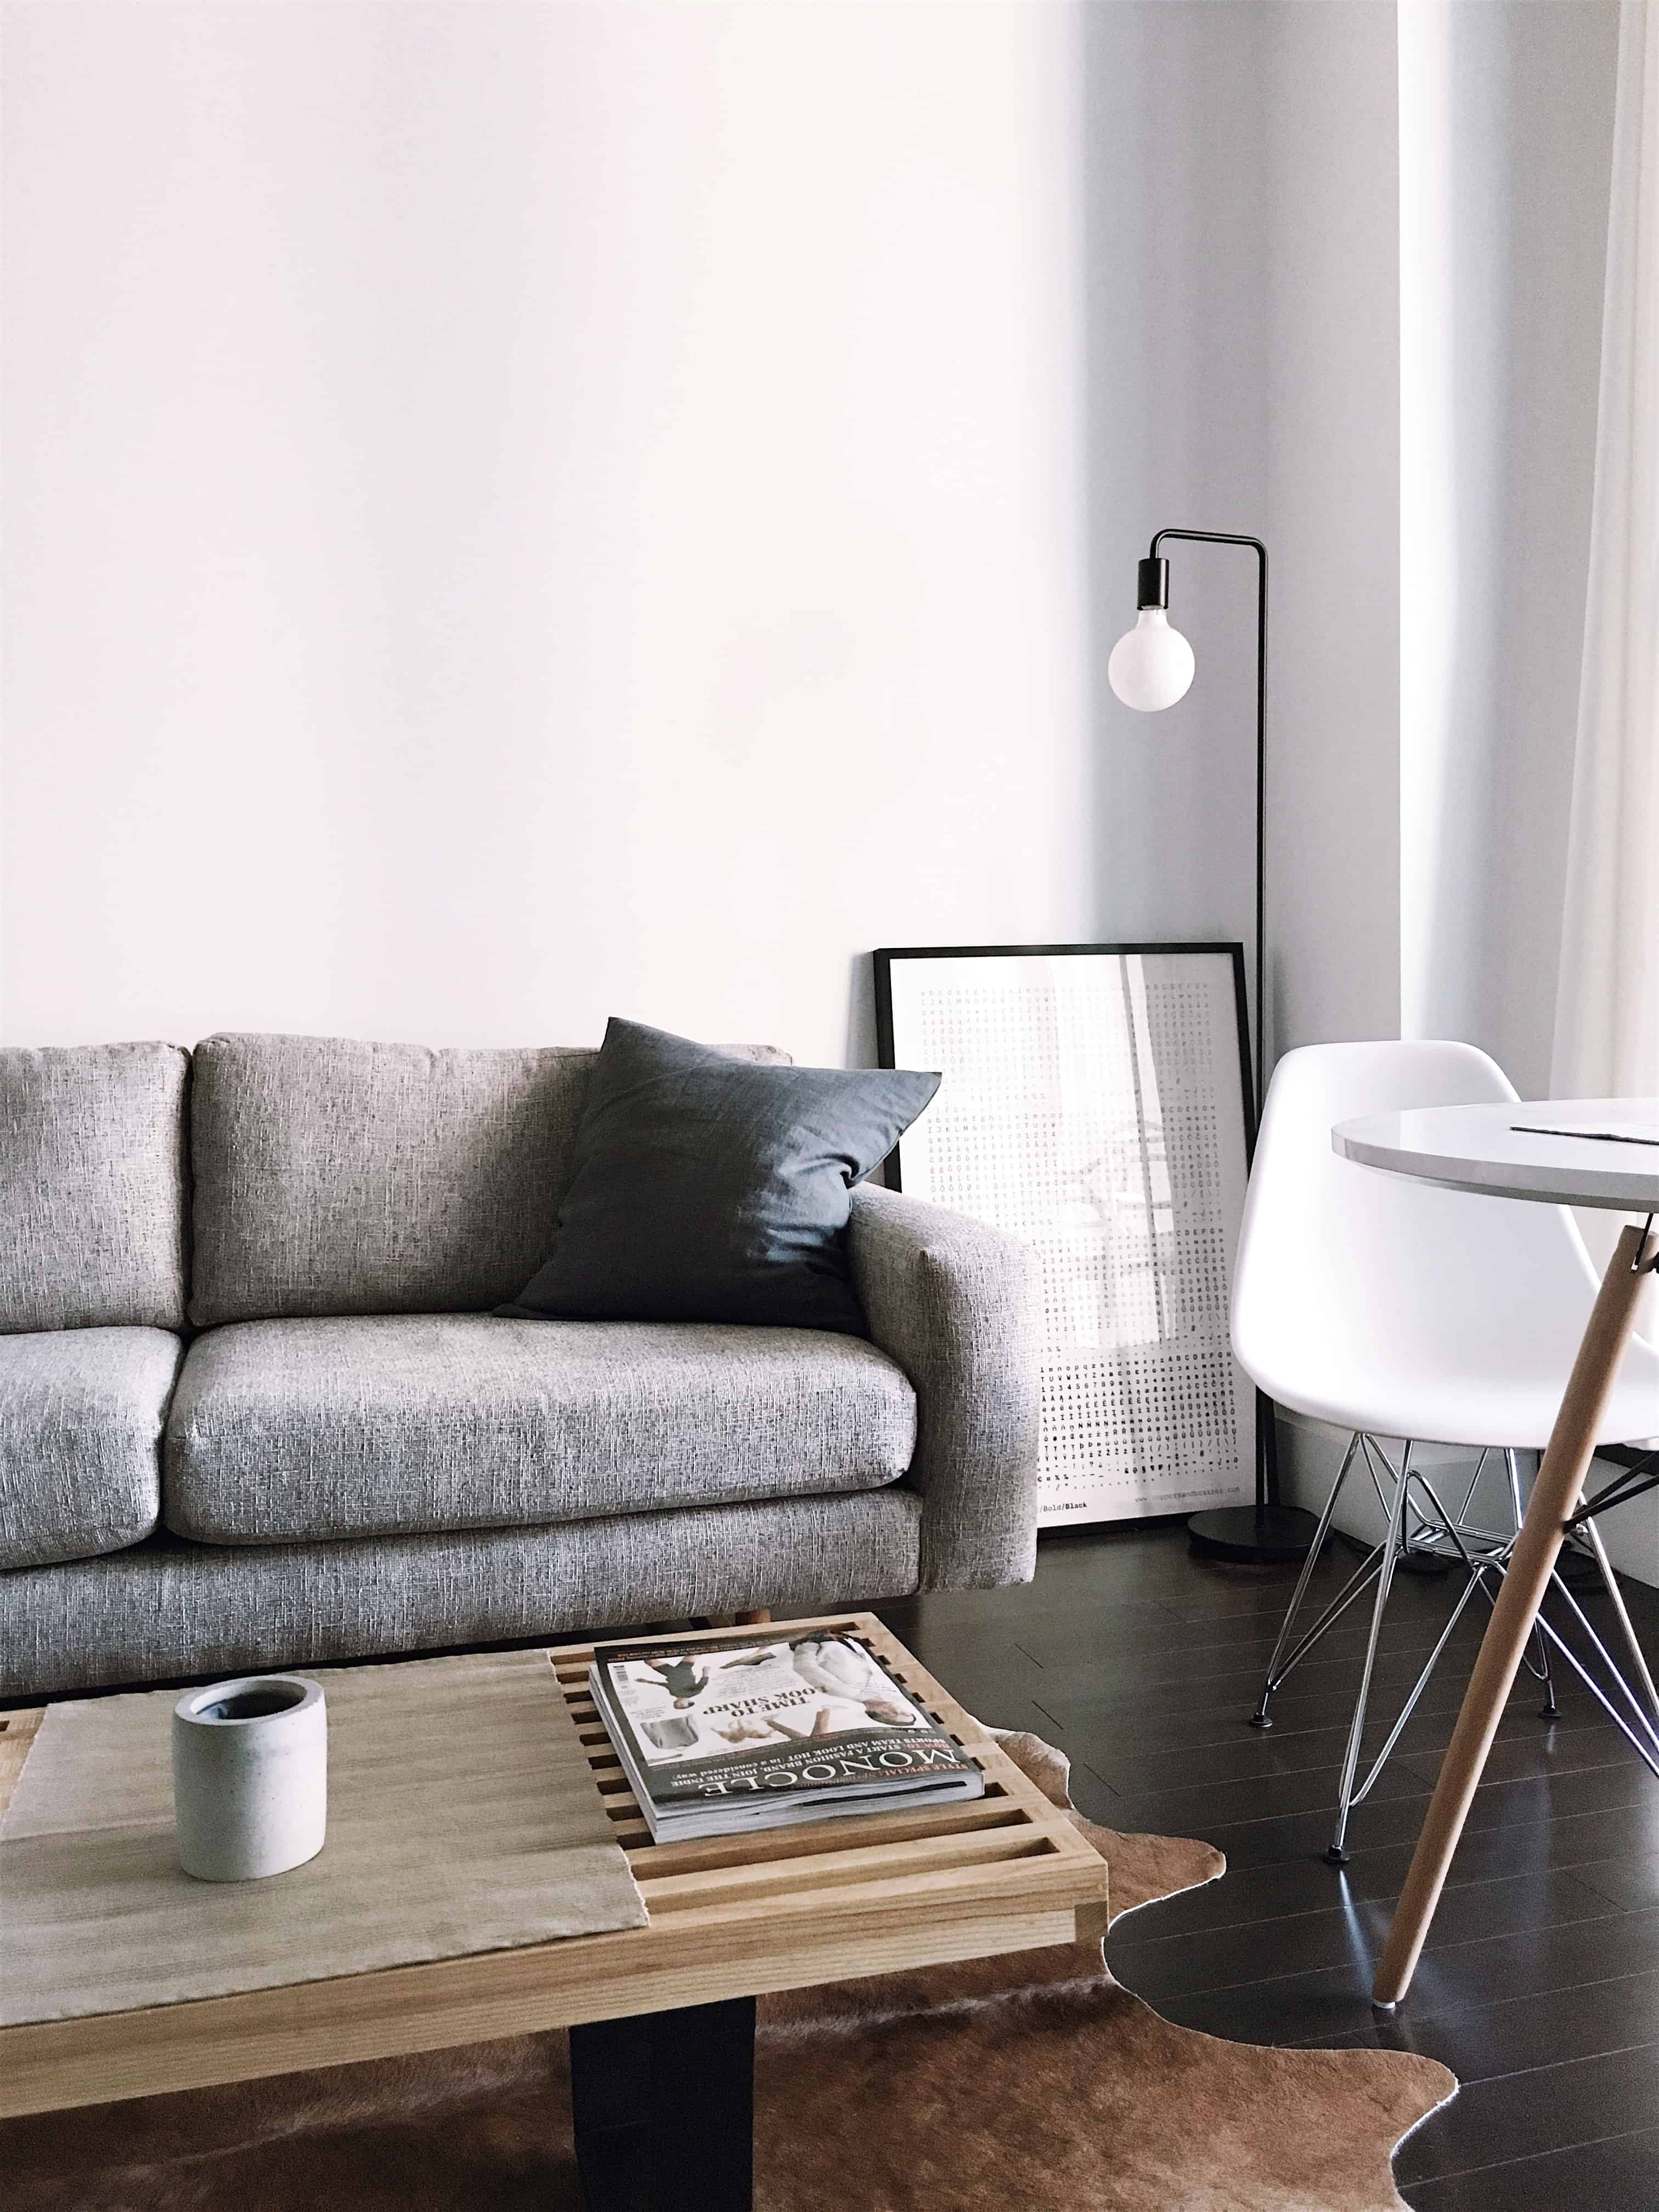 Sofa view - interior design company in bangalore